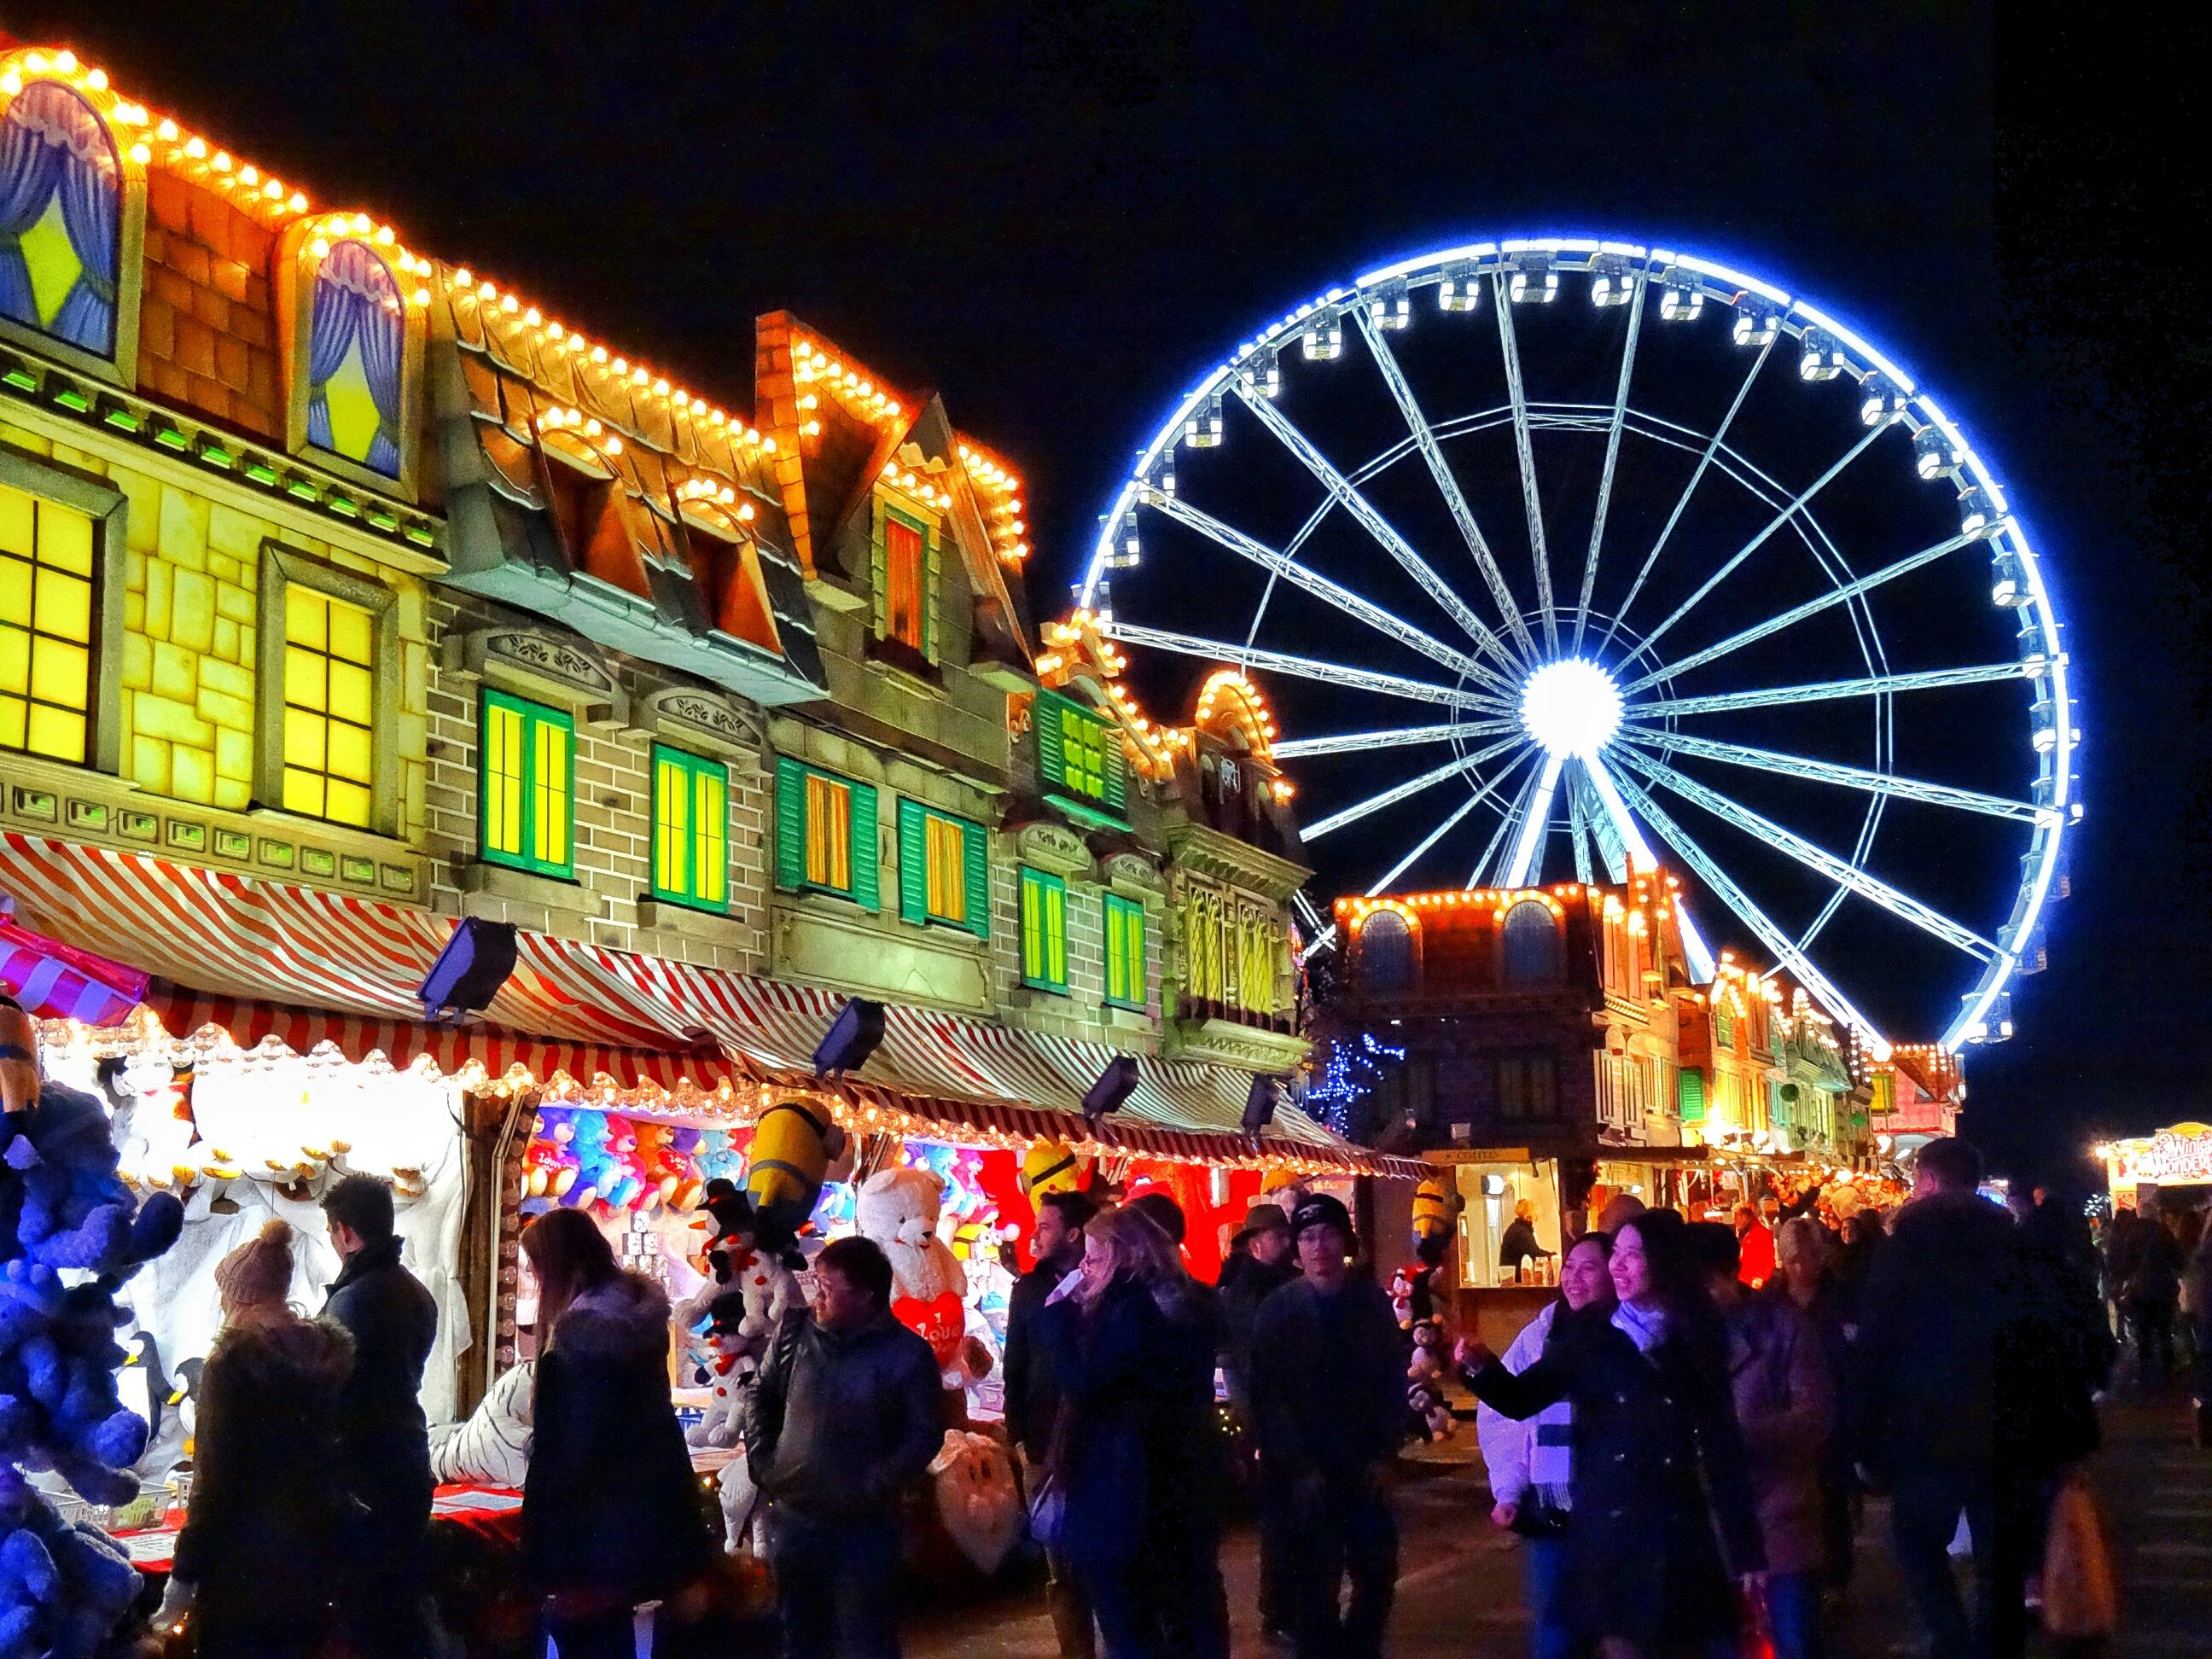 Christmas-market-London-Winter-Wonderland-6